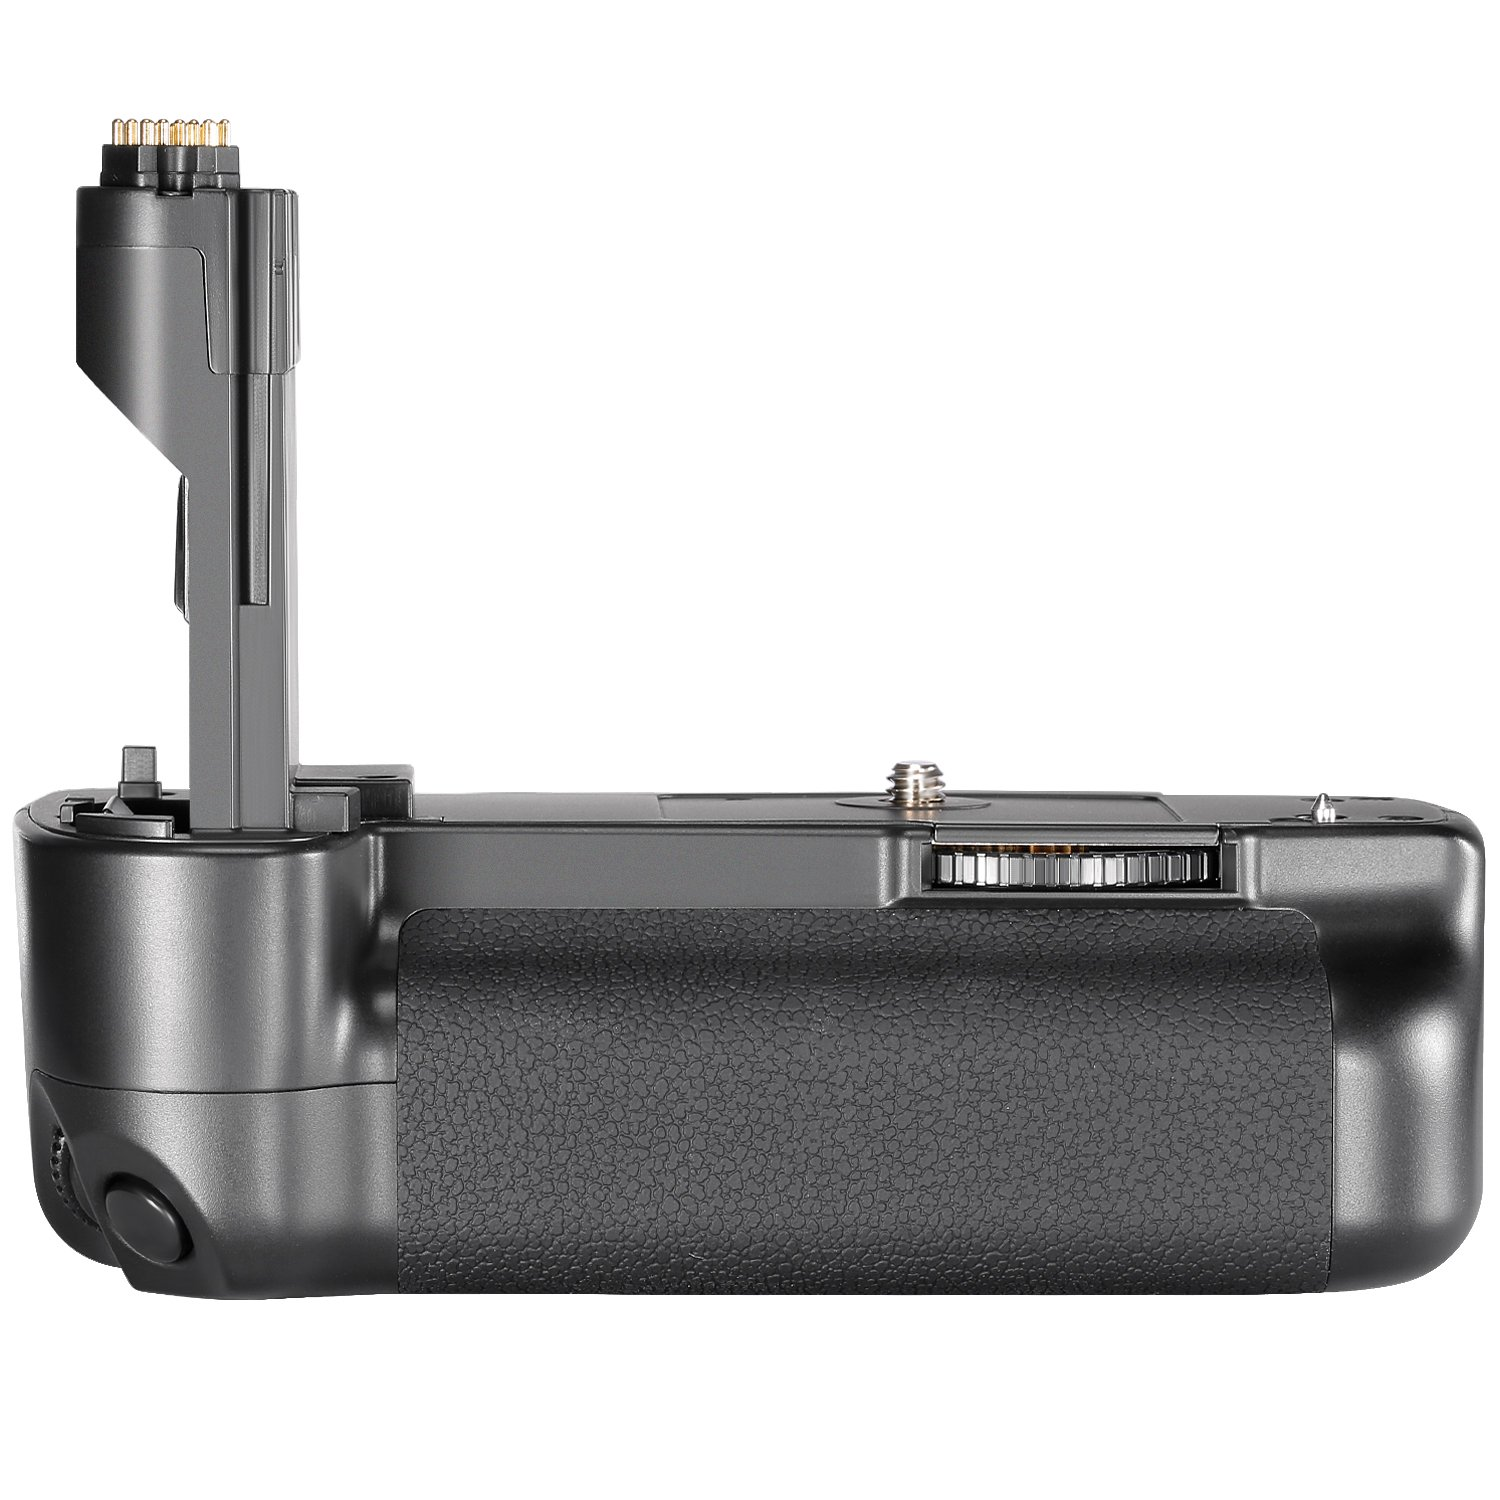 Neewer Vertical Battery Grip Replacement for Canon BG-E11 Works with LP-E6 Battery or 6 Pieces of AA Batteries for Canon 5D Mark III/ 5DS / 5DSR Cameras